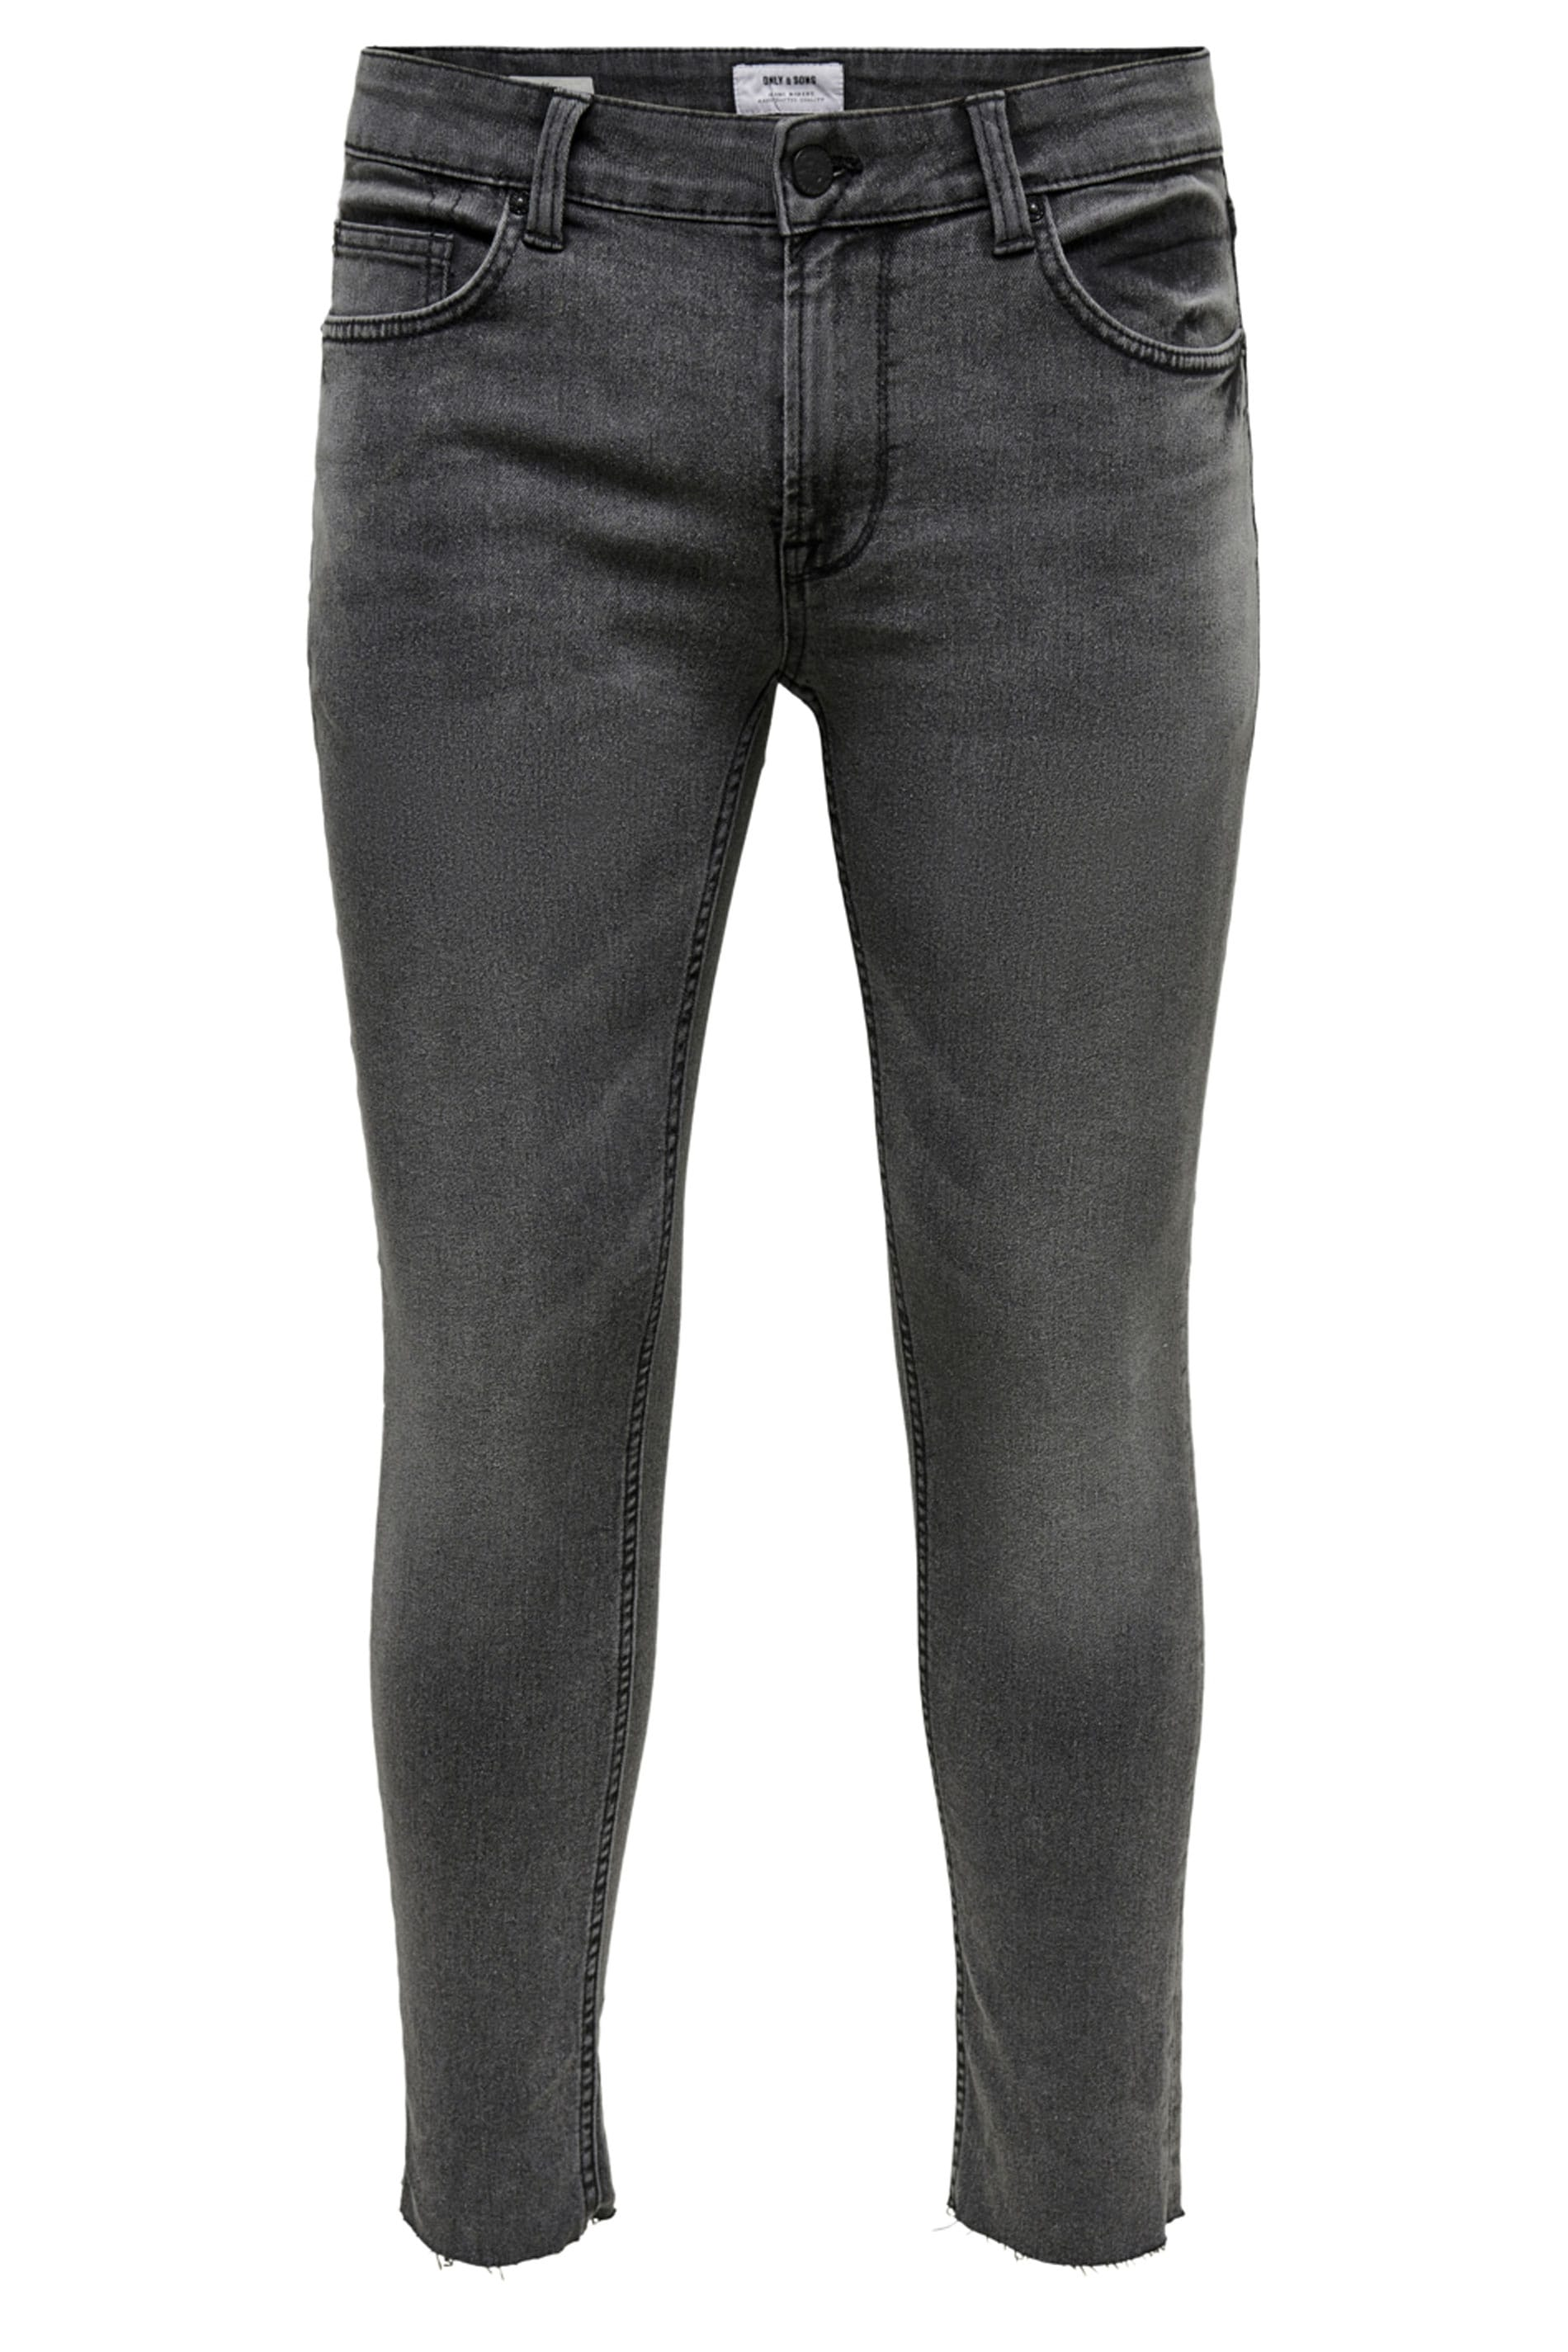 ONLY & SONS Black Crop Skinny Fit Jeans